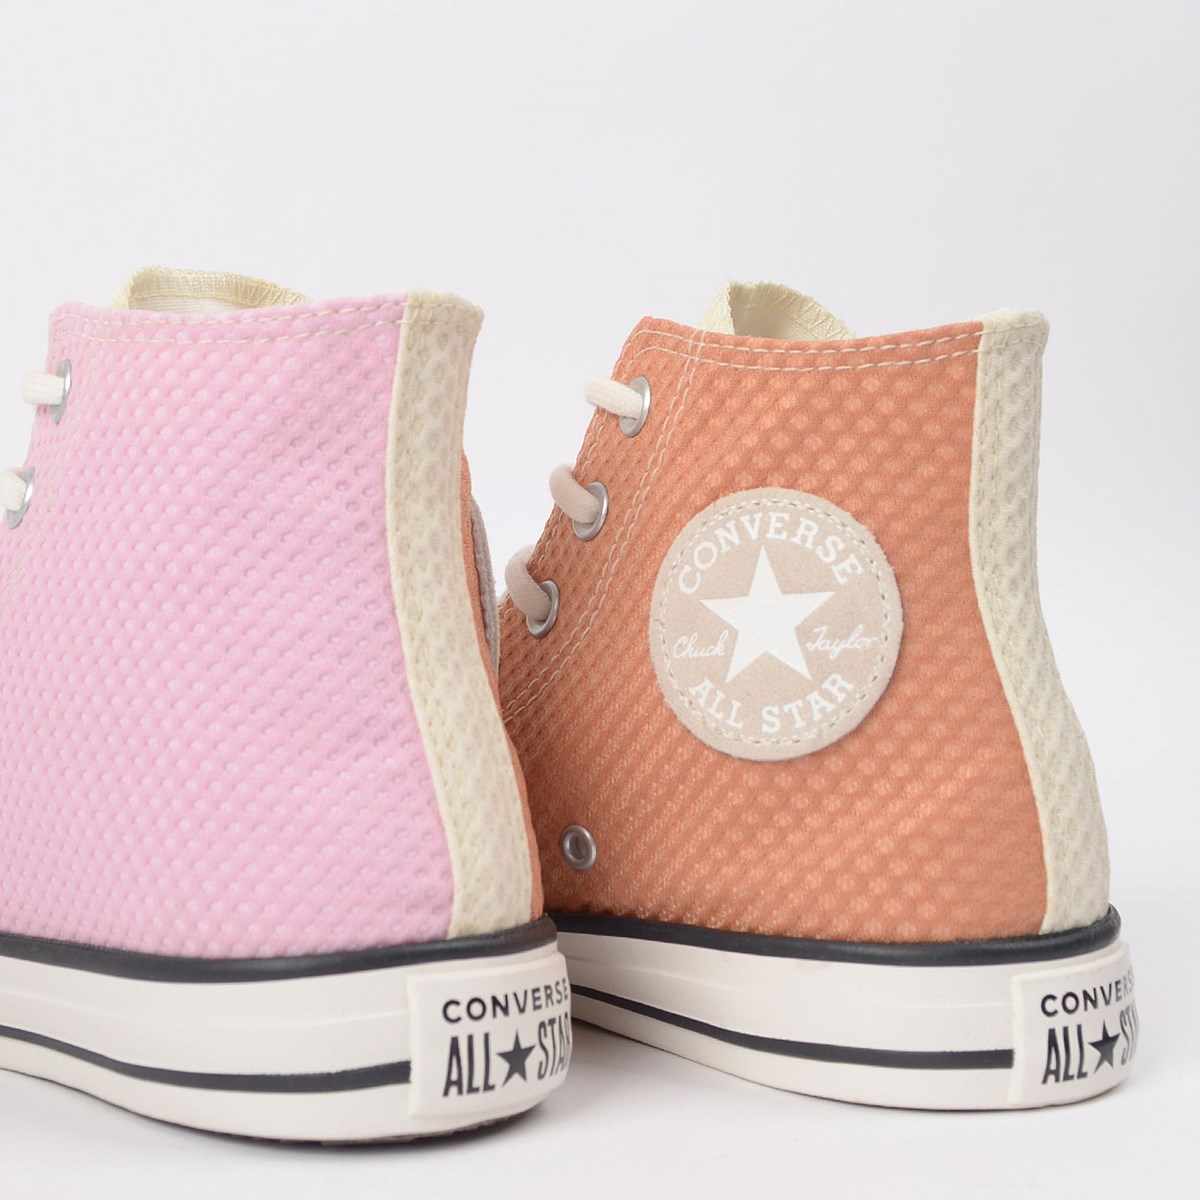 Tênis Converse Chuck Taylor All Star Hi Bege Gengibre CT14650001